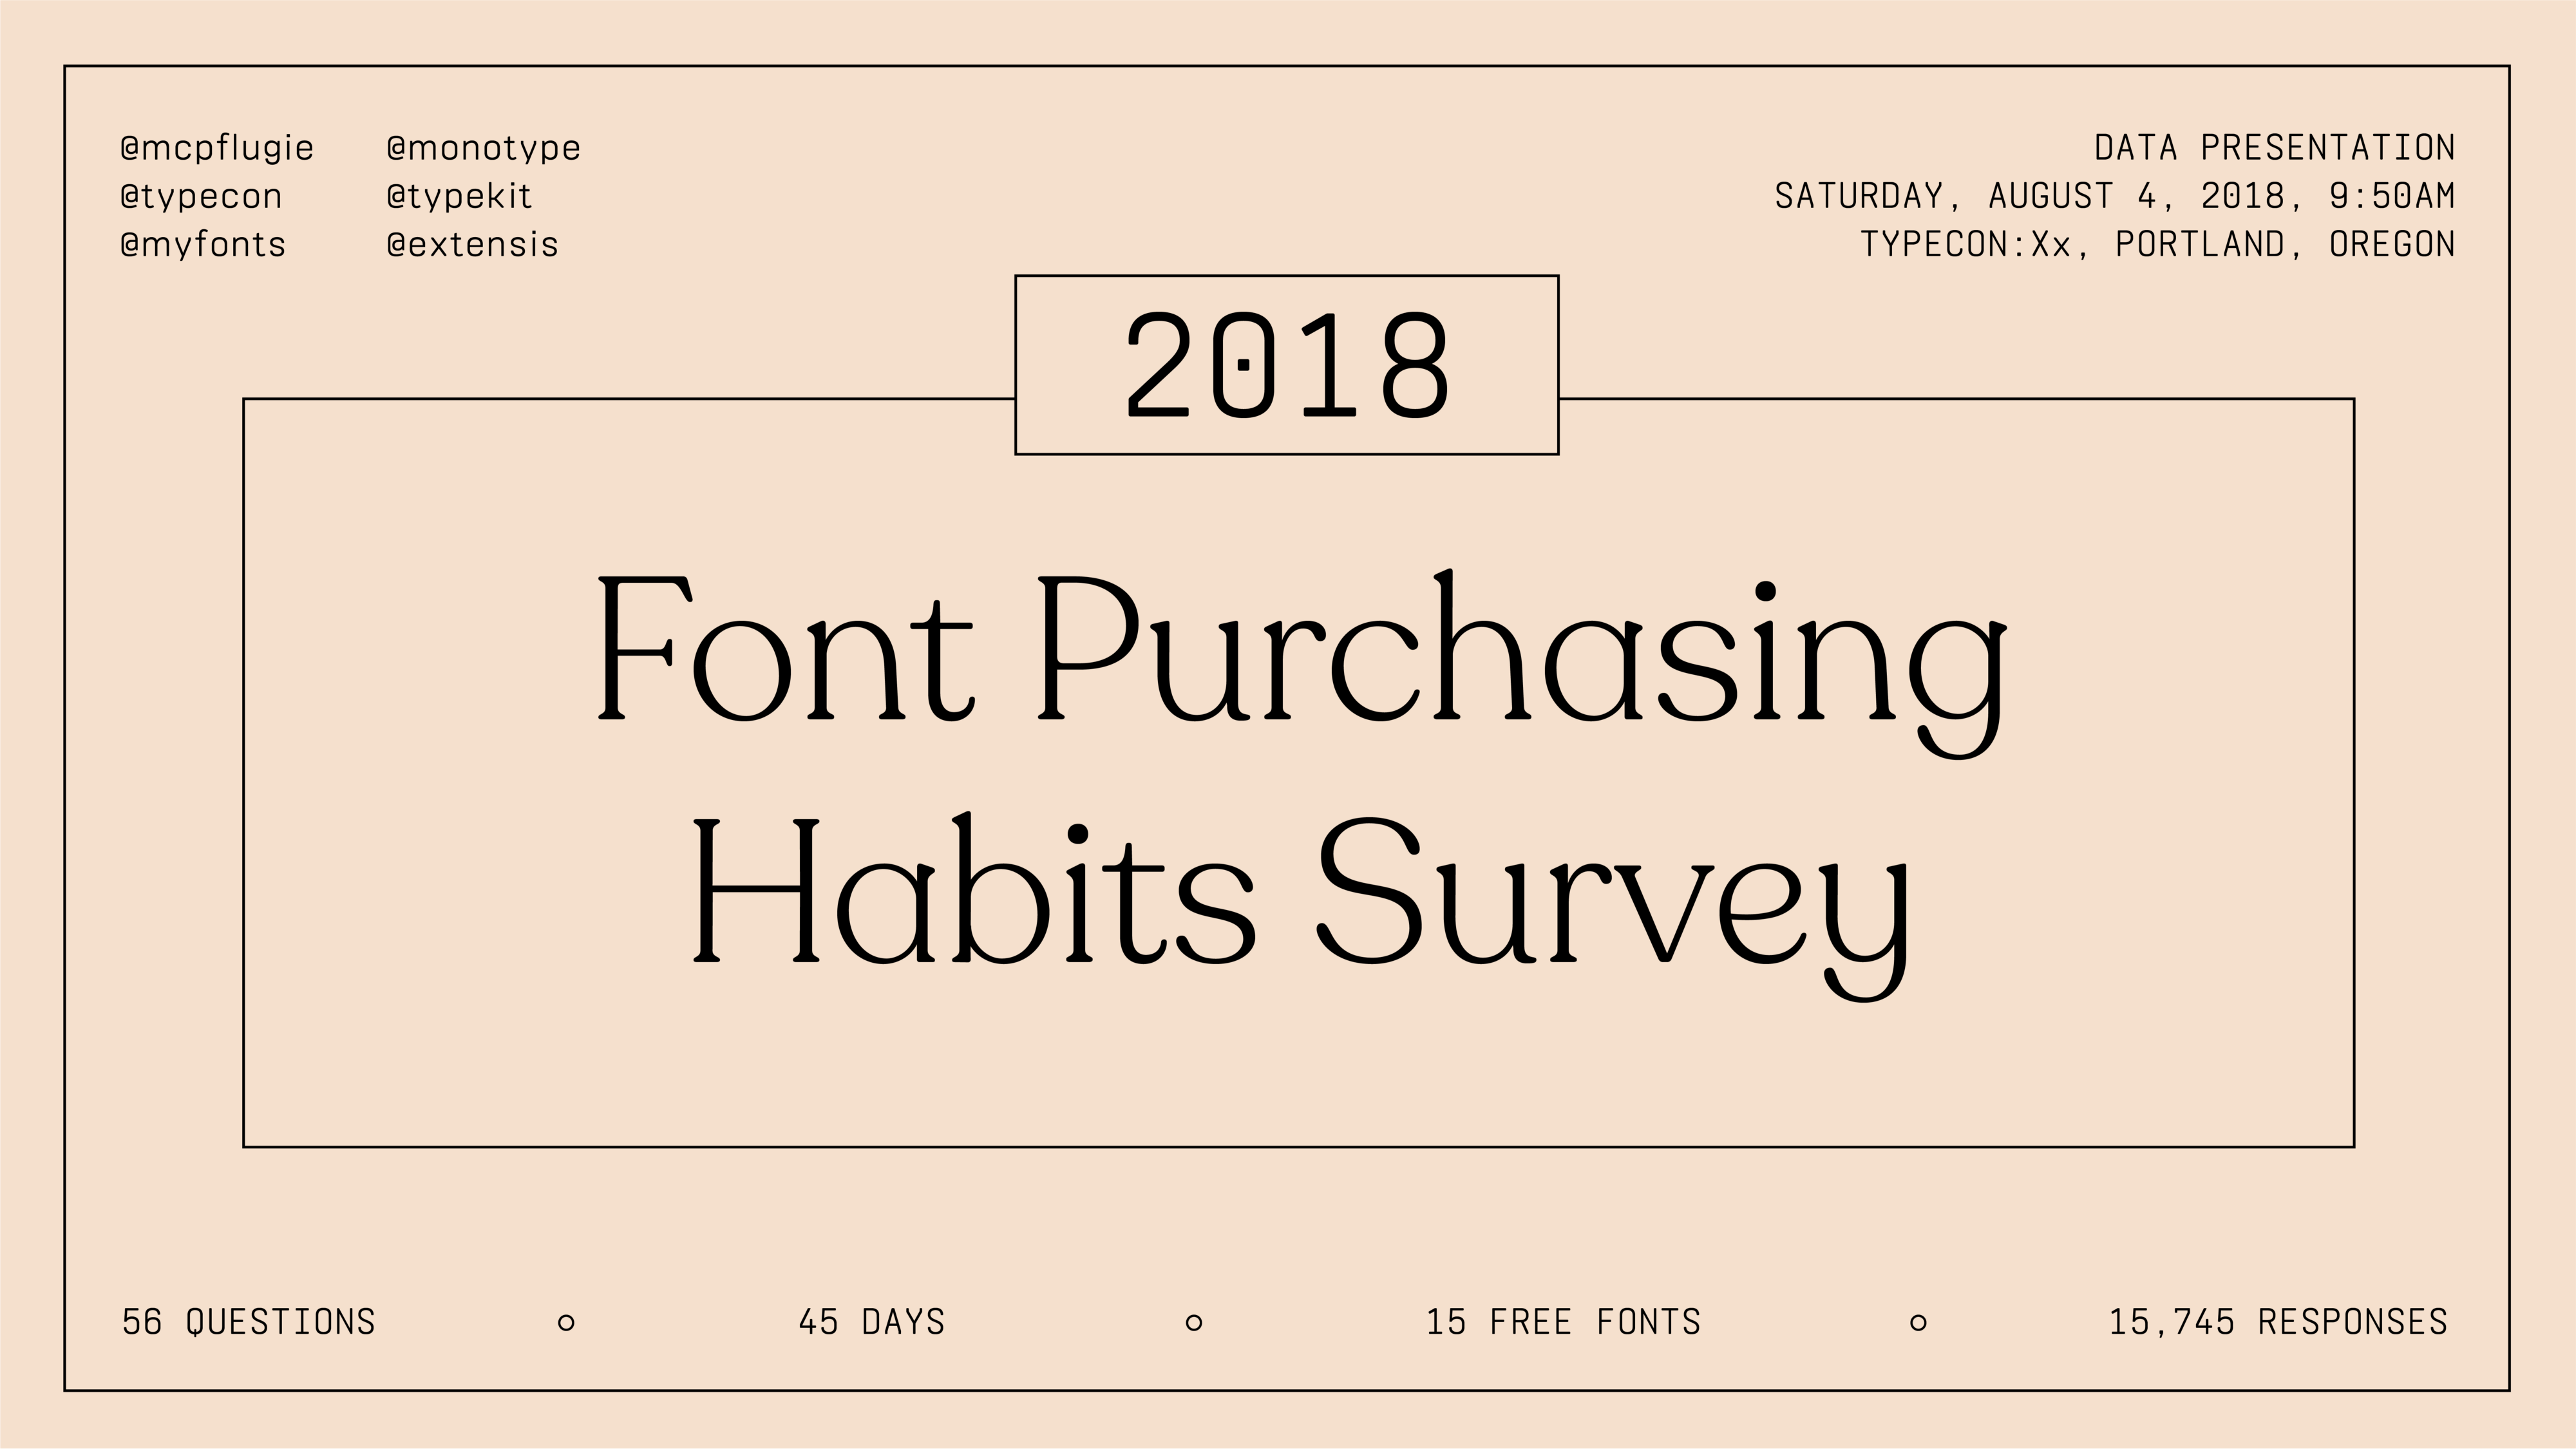 The 2018 Font Purchasing Habits Survey Results (Complete Edition)